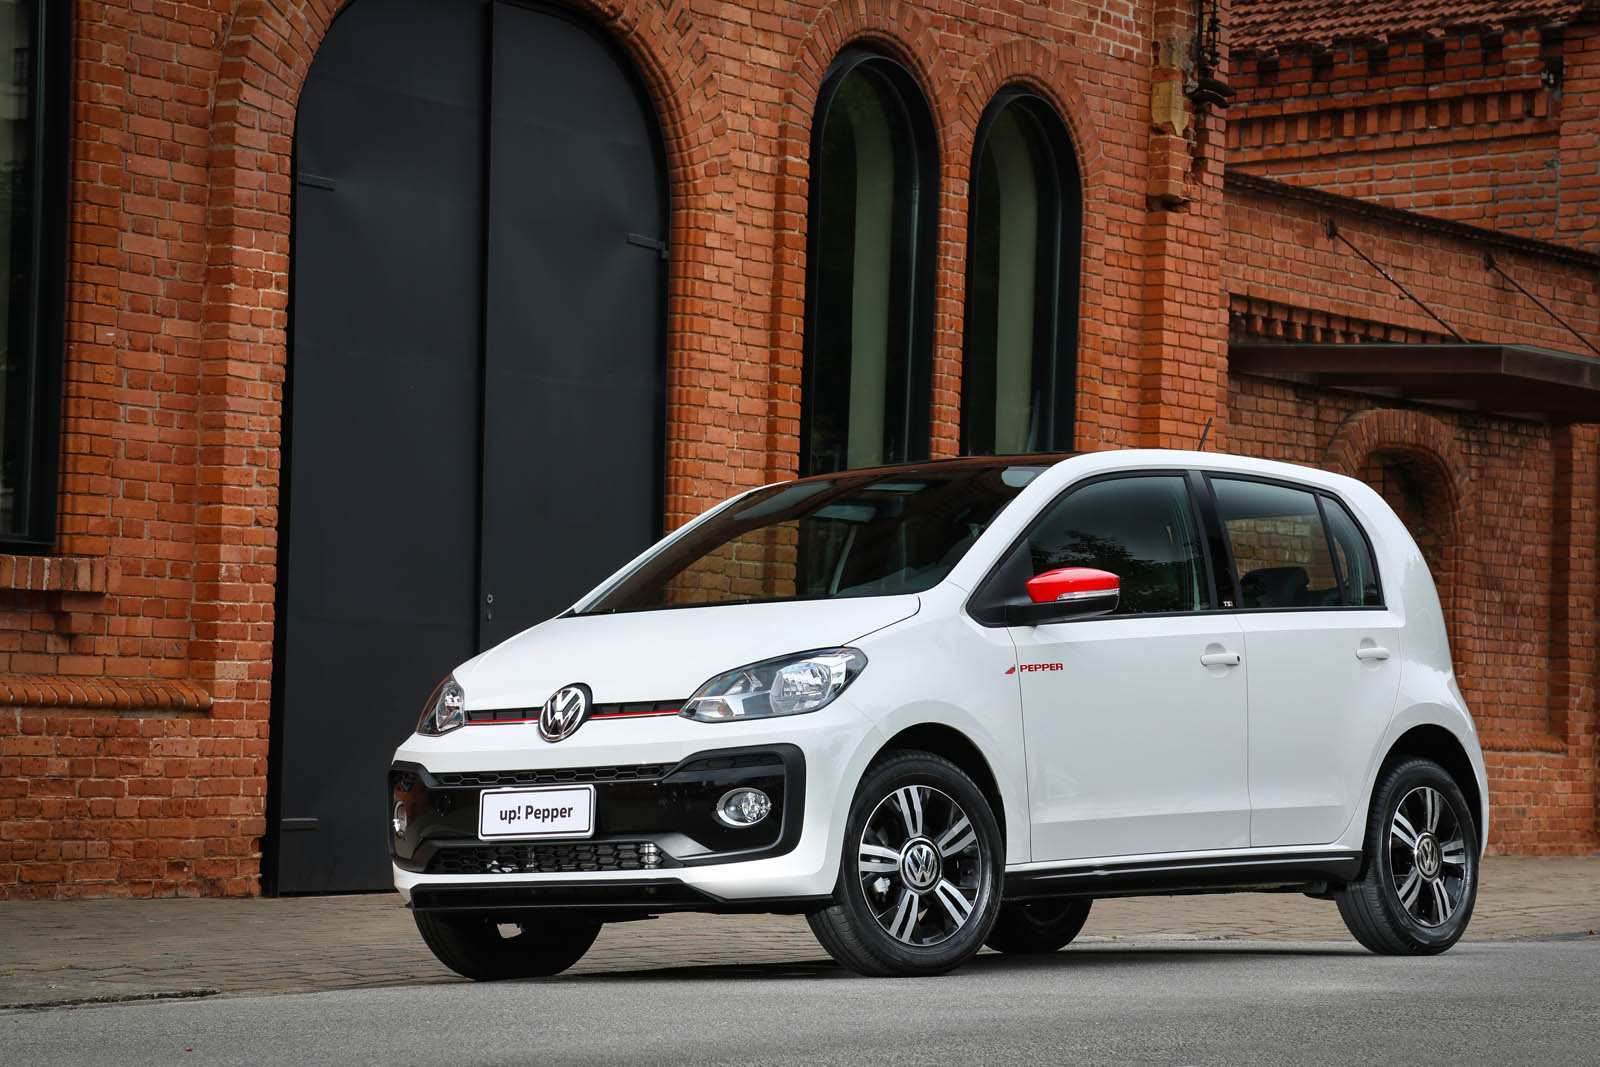 95 Gallery of Vw Up Pepper 2019 Style for Vw Up Pepper 2019